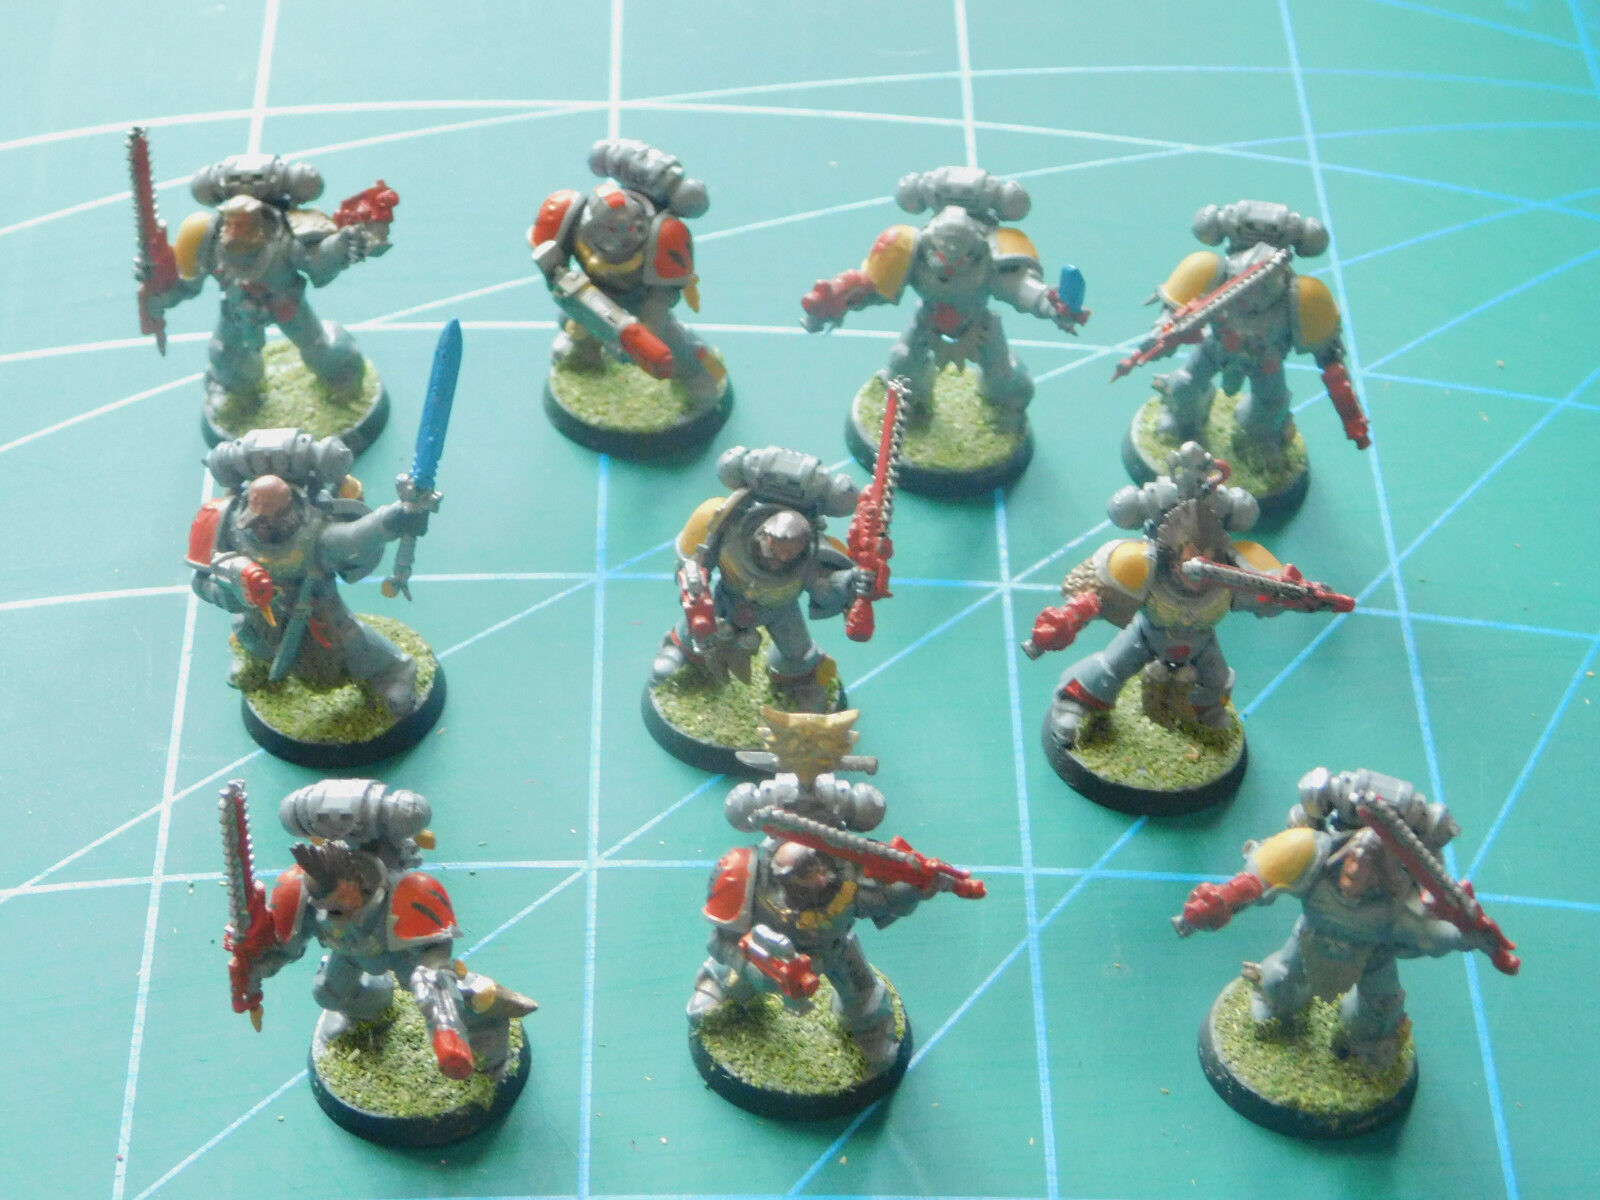 10 warhammer 40k dungeons dungeons dungeons dragons space marine painted plastic figures 883a29